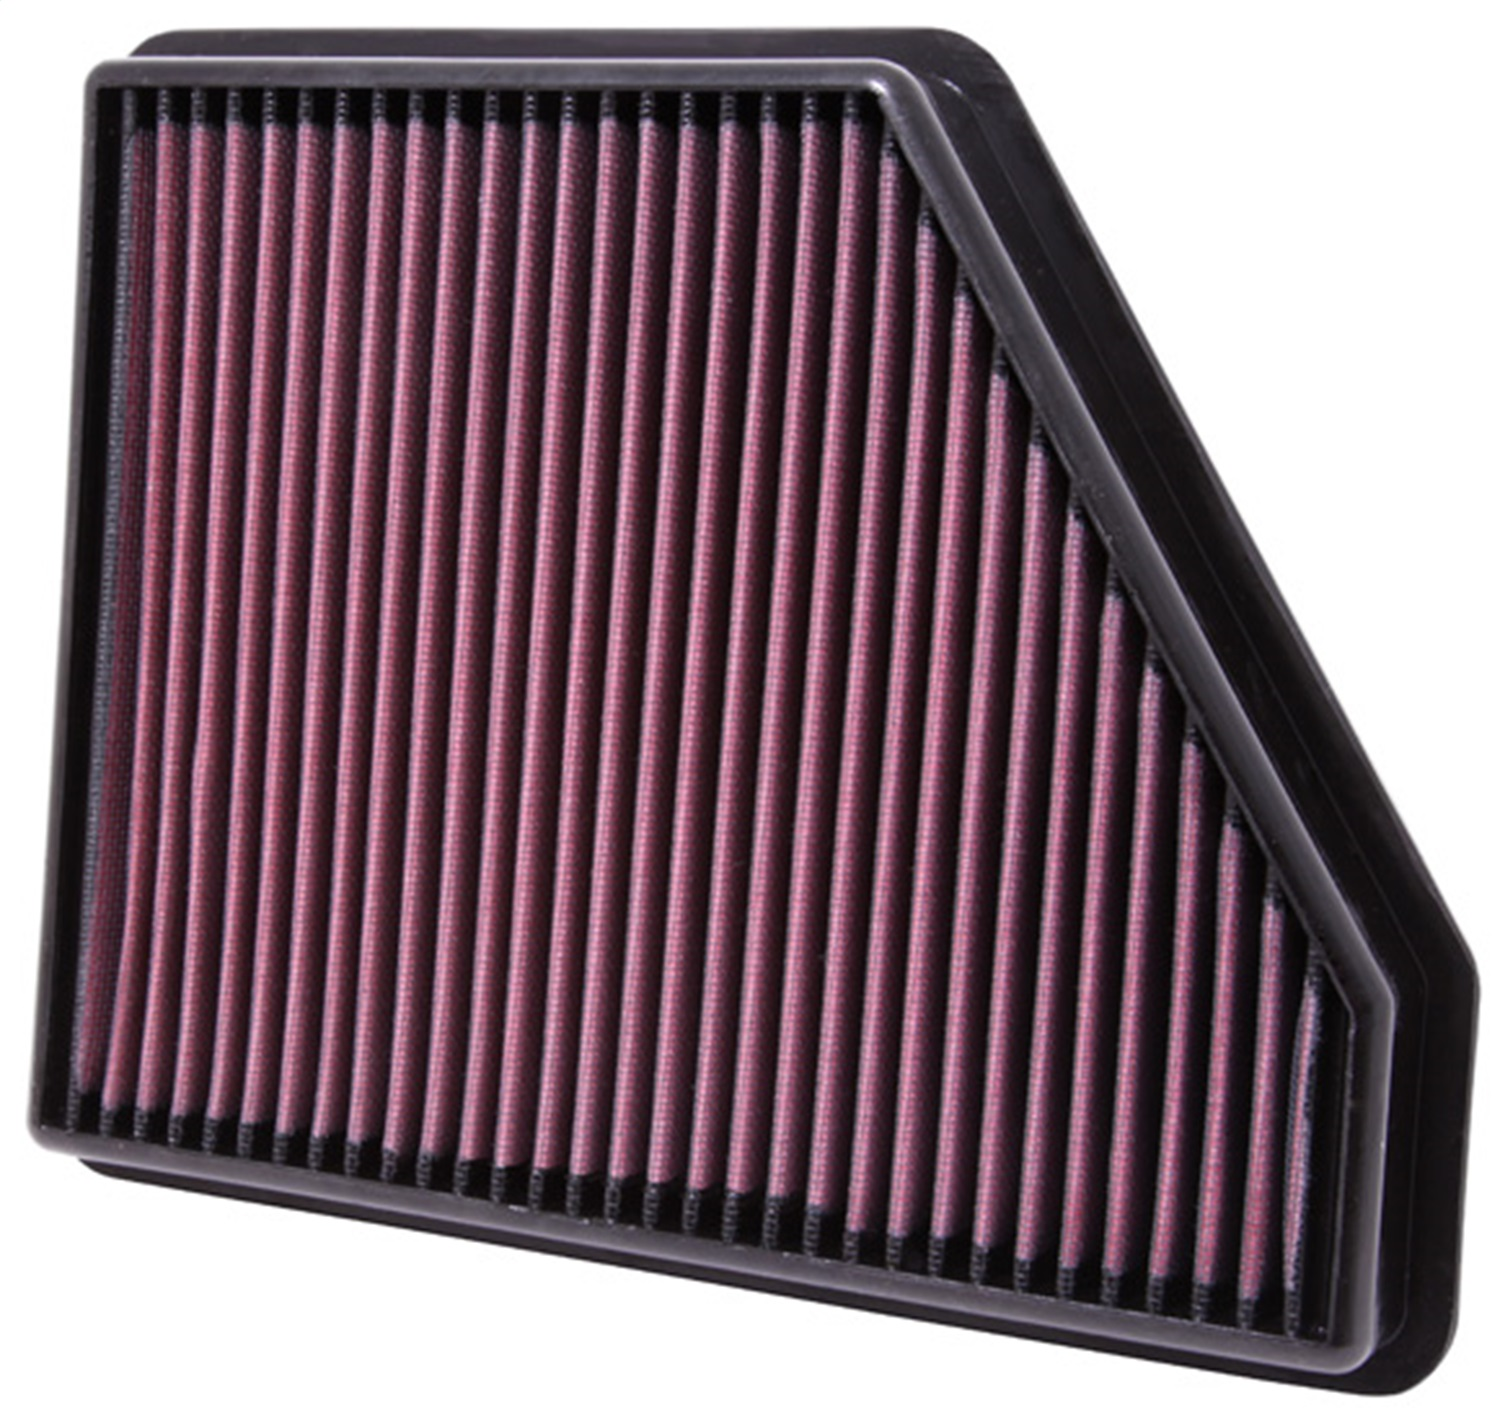 K&N Filters 33-2434 Air Filter Fits 10-14 Camaro 33-2434